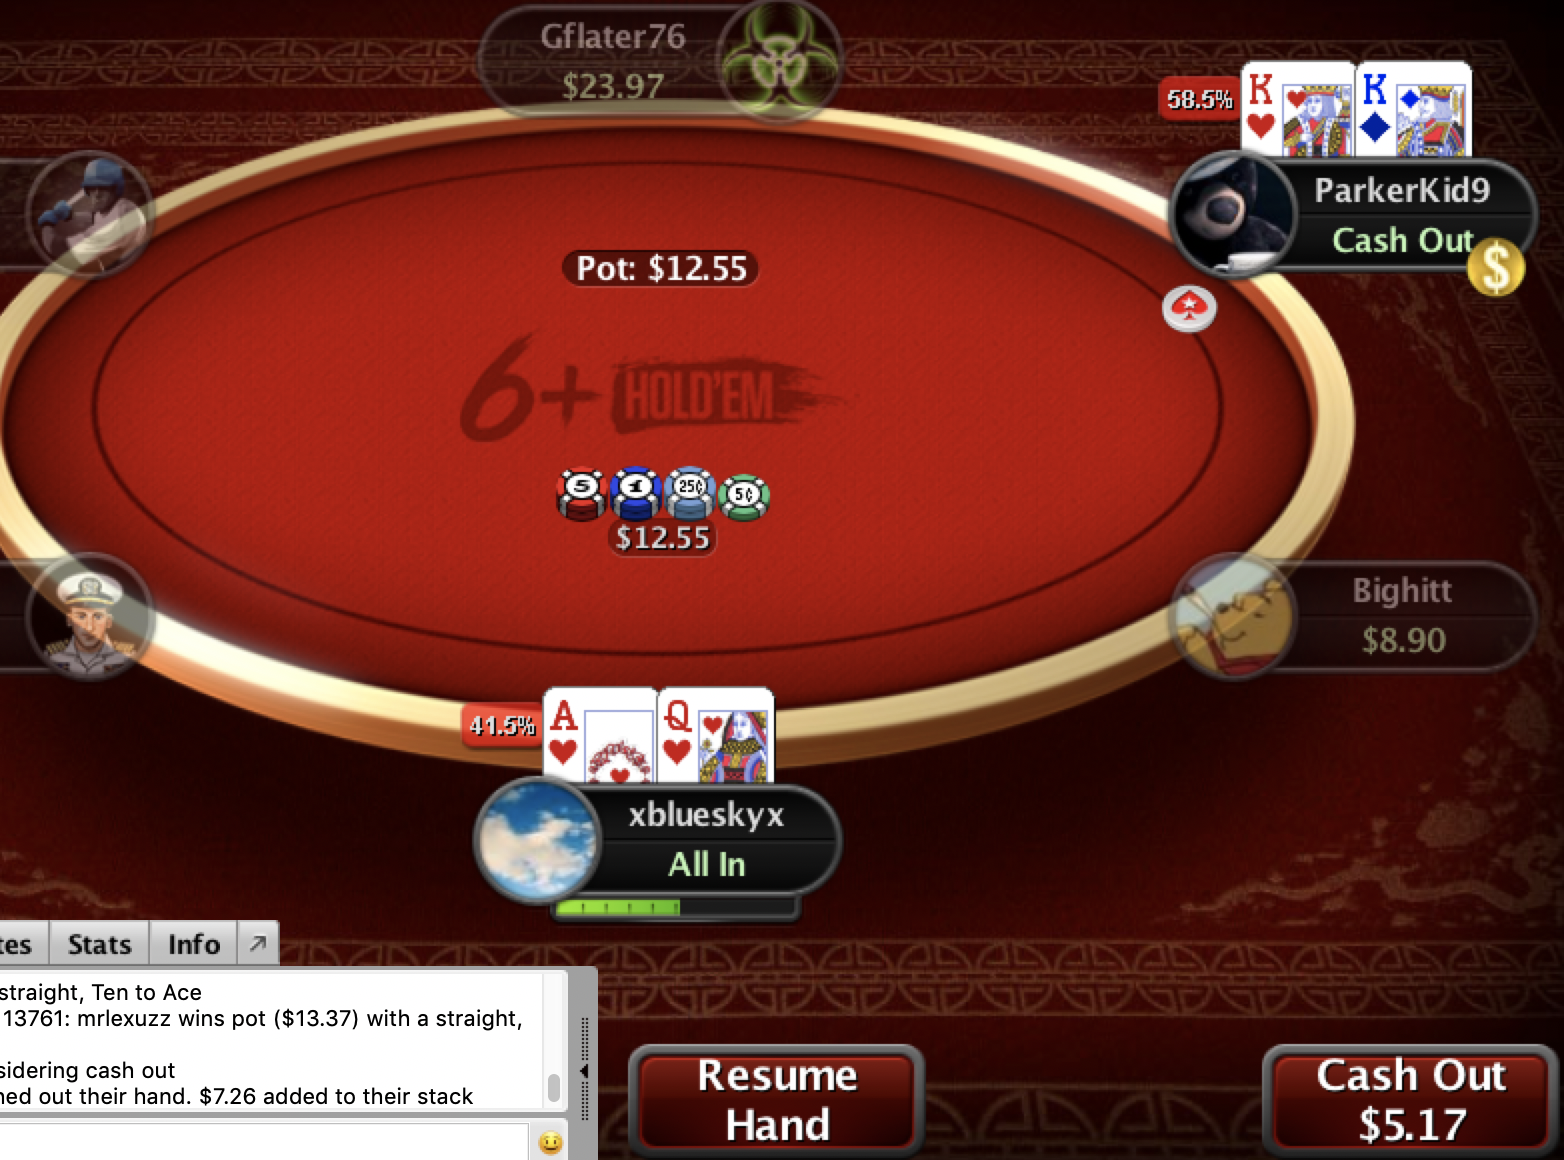 New PokerStars Feature: All in Cash Out - New Online Poker